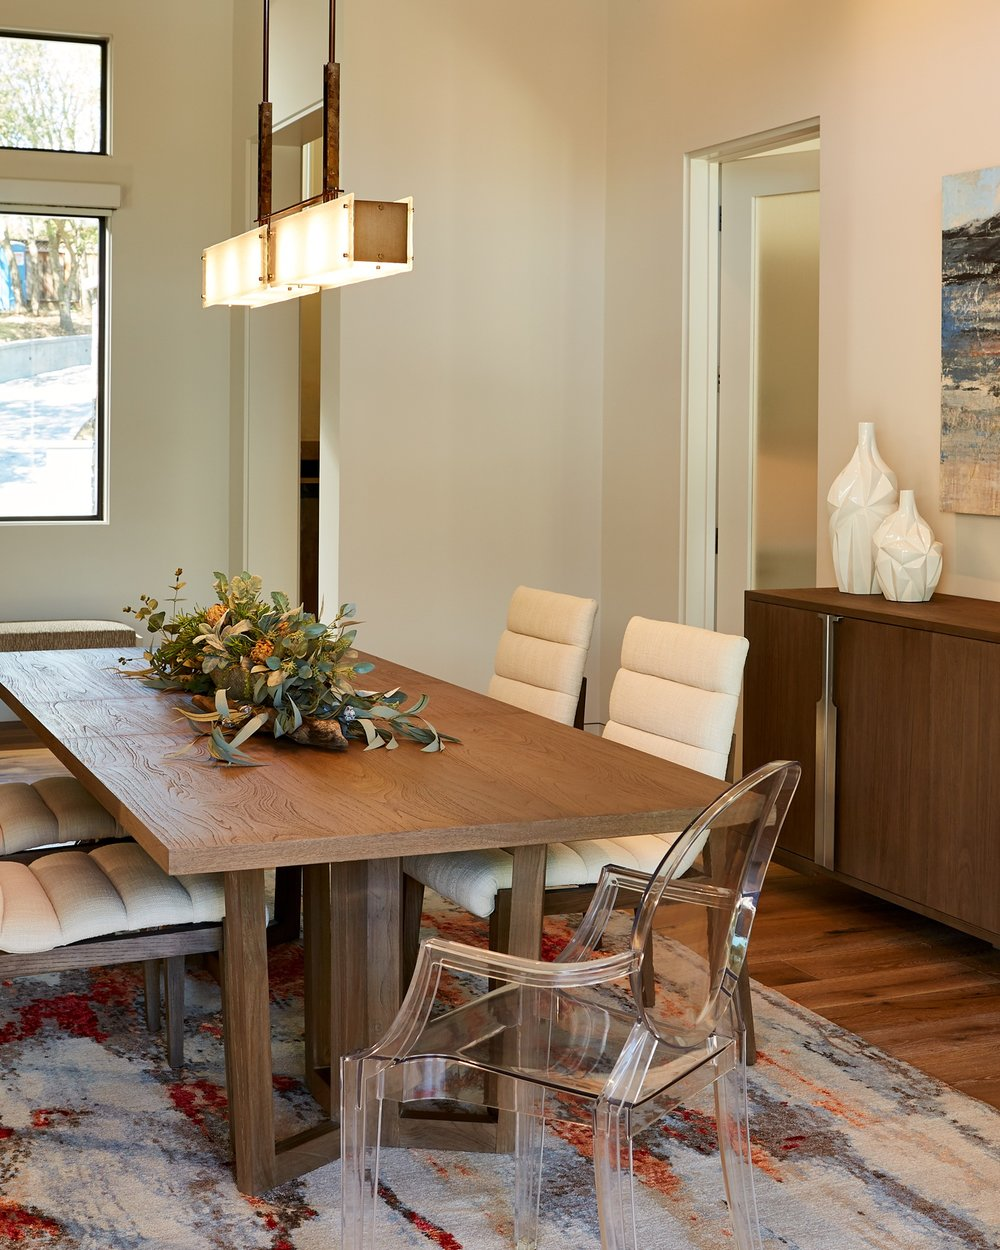 From Hammerton Studio, an Urban Loft 'Trestle' linear suspension floats above a dining table.